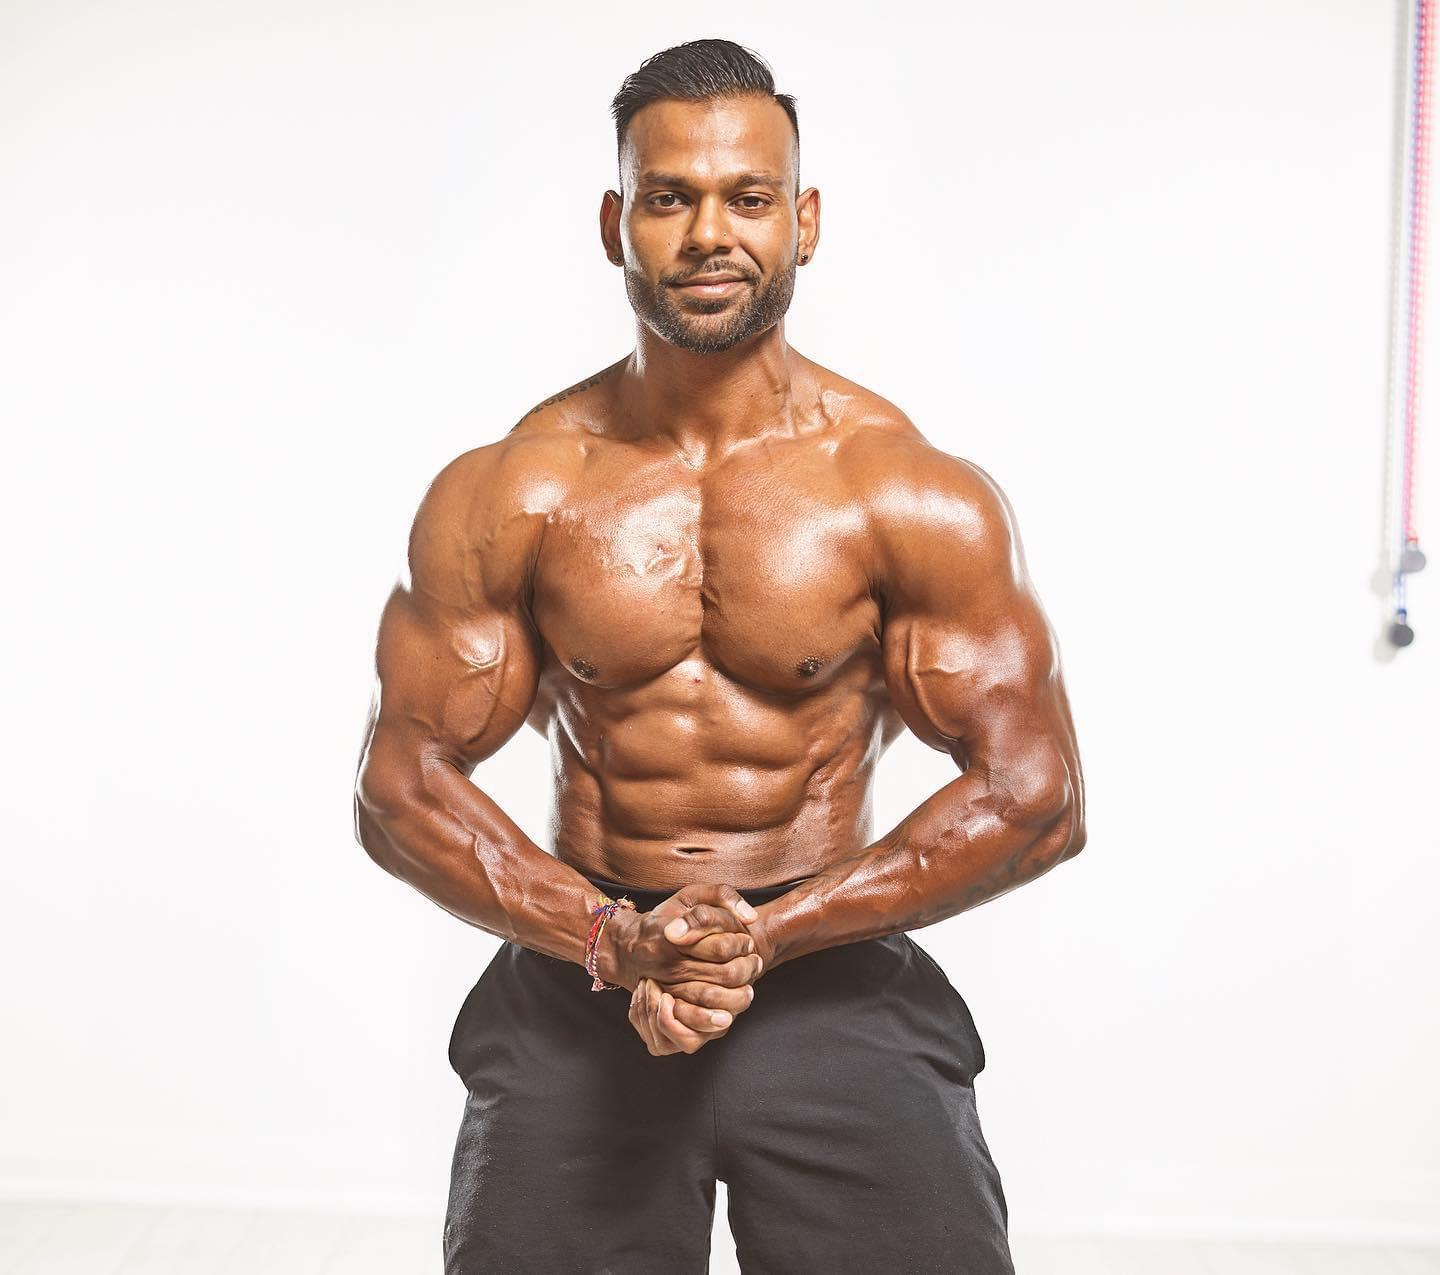 Shane Makan: Redefining Fitness Solutions through His Experiences at 'Hammer Fitness'